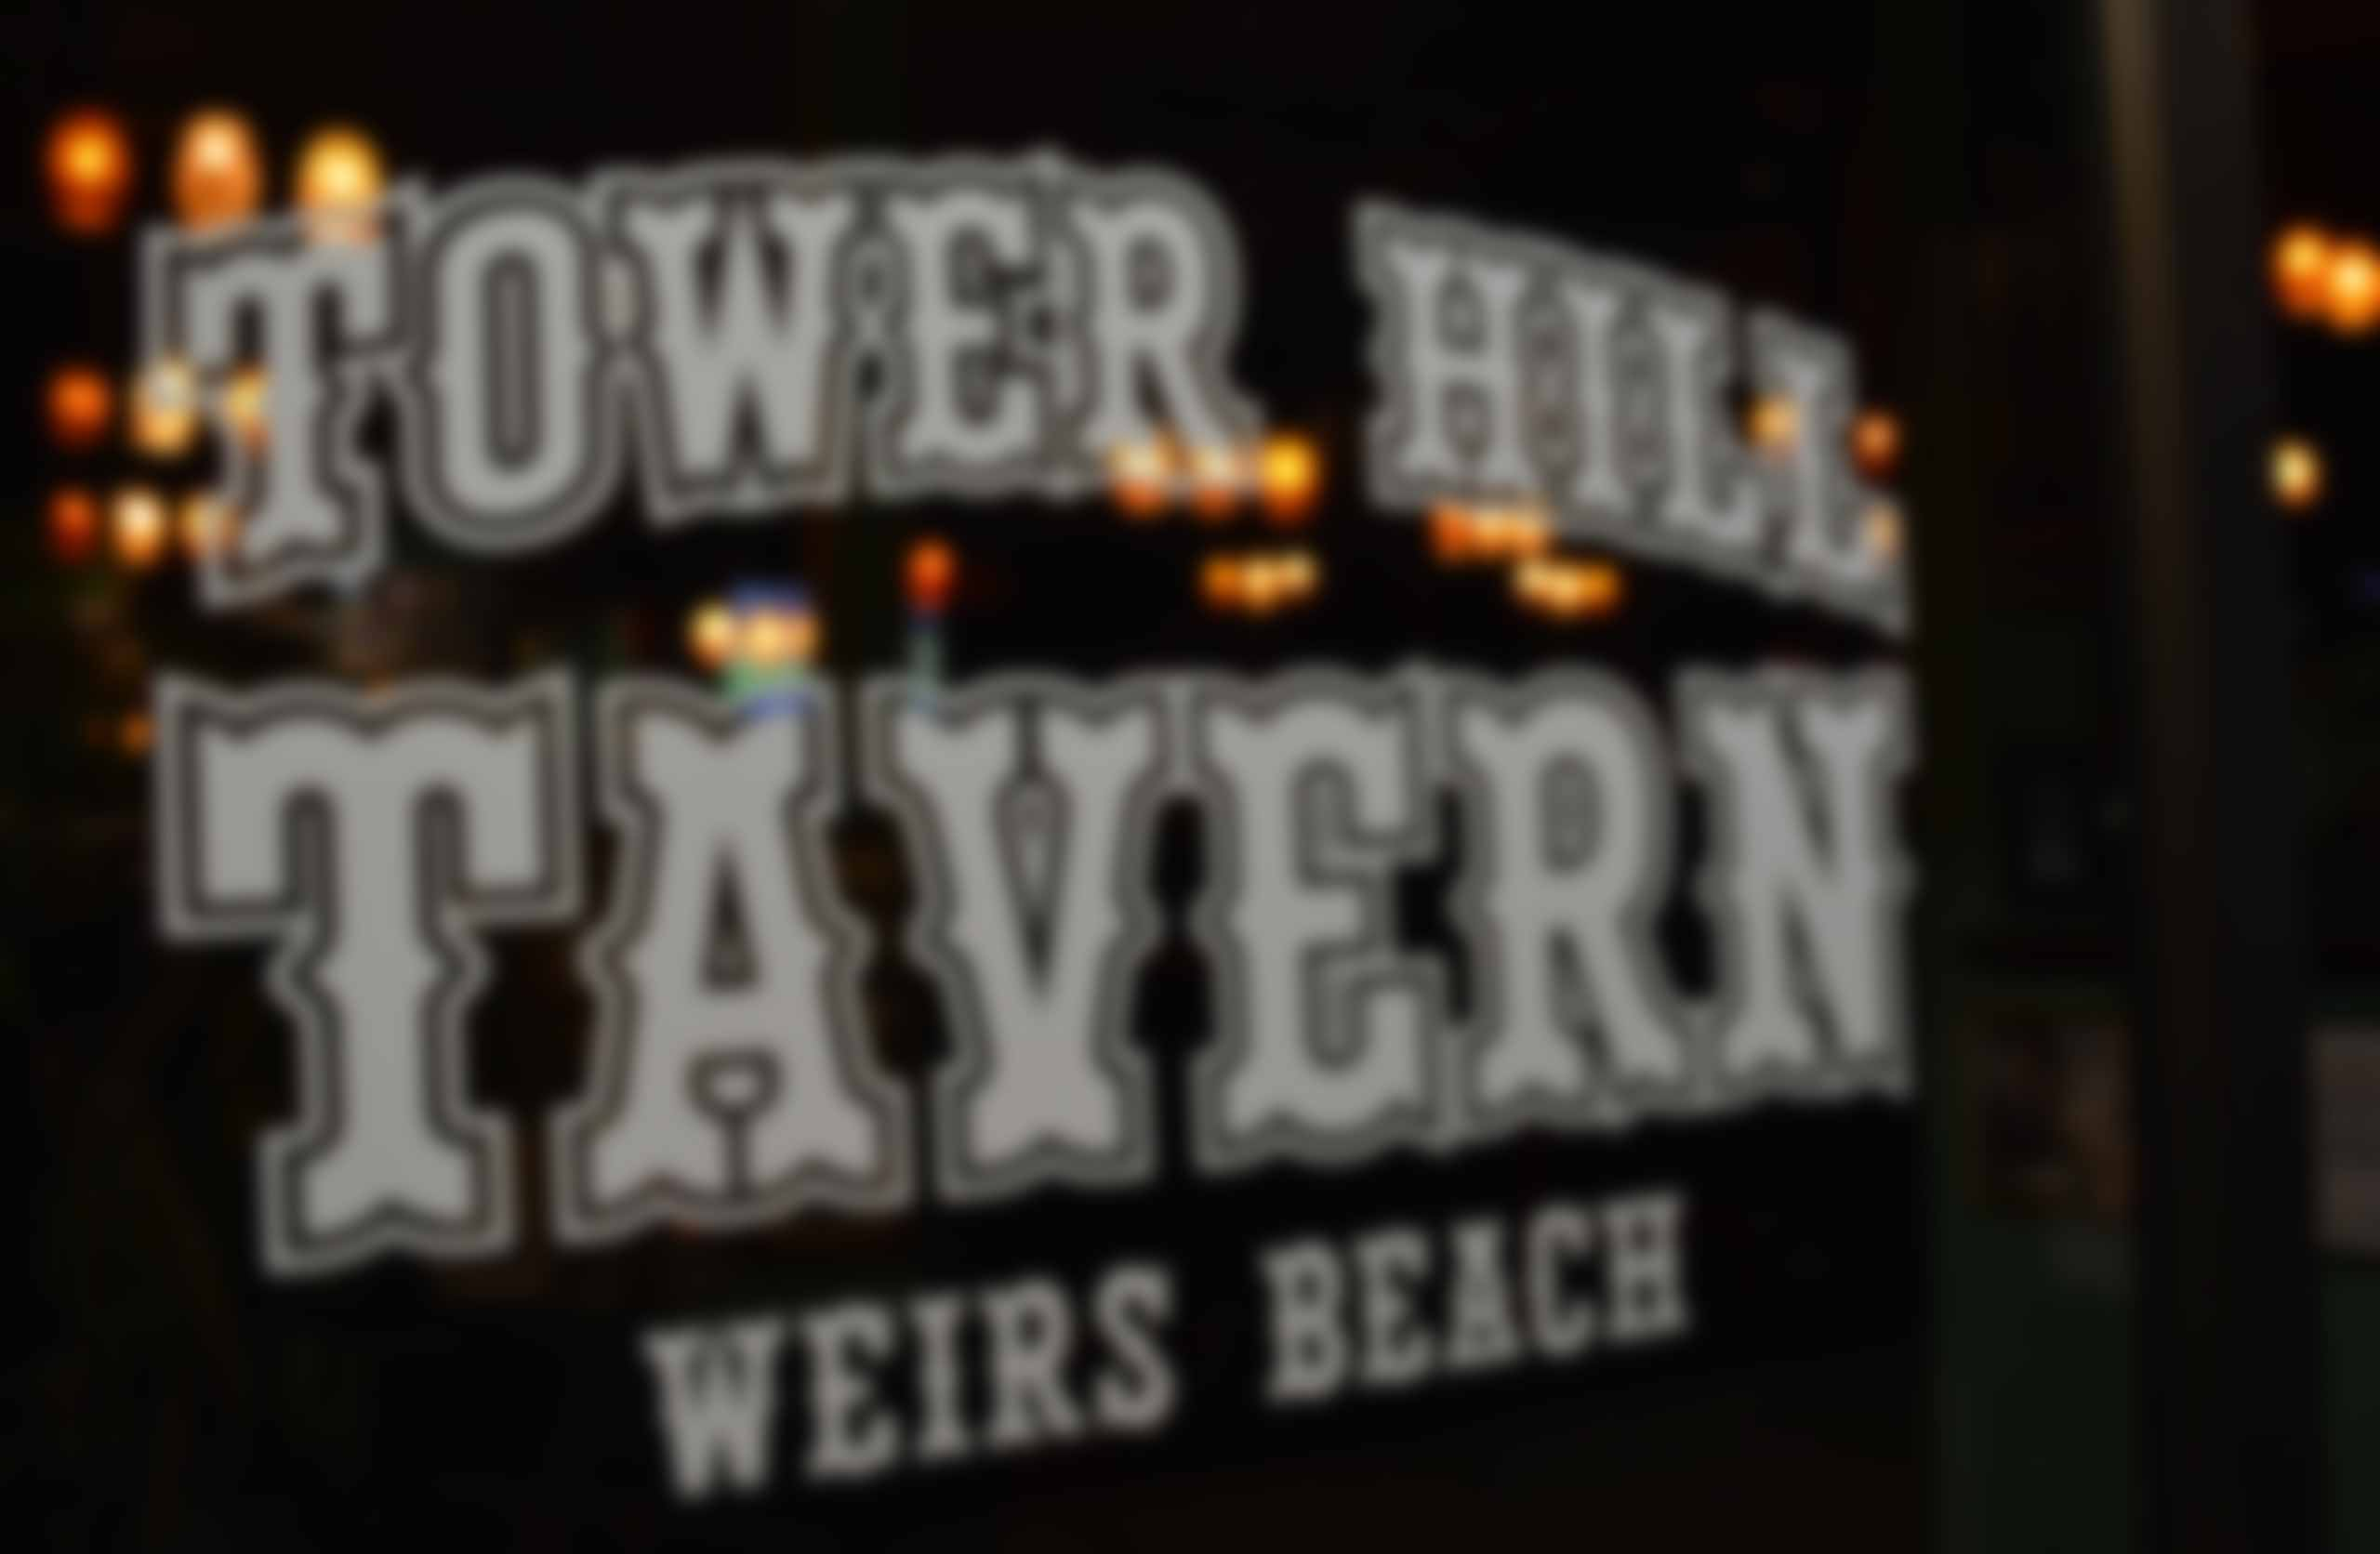 Front Door of Tower Hill Tavern